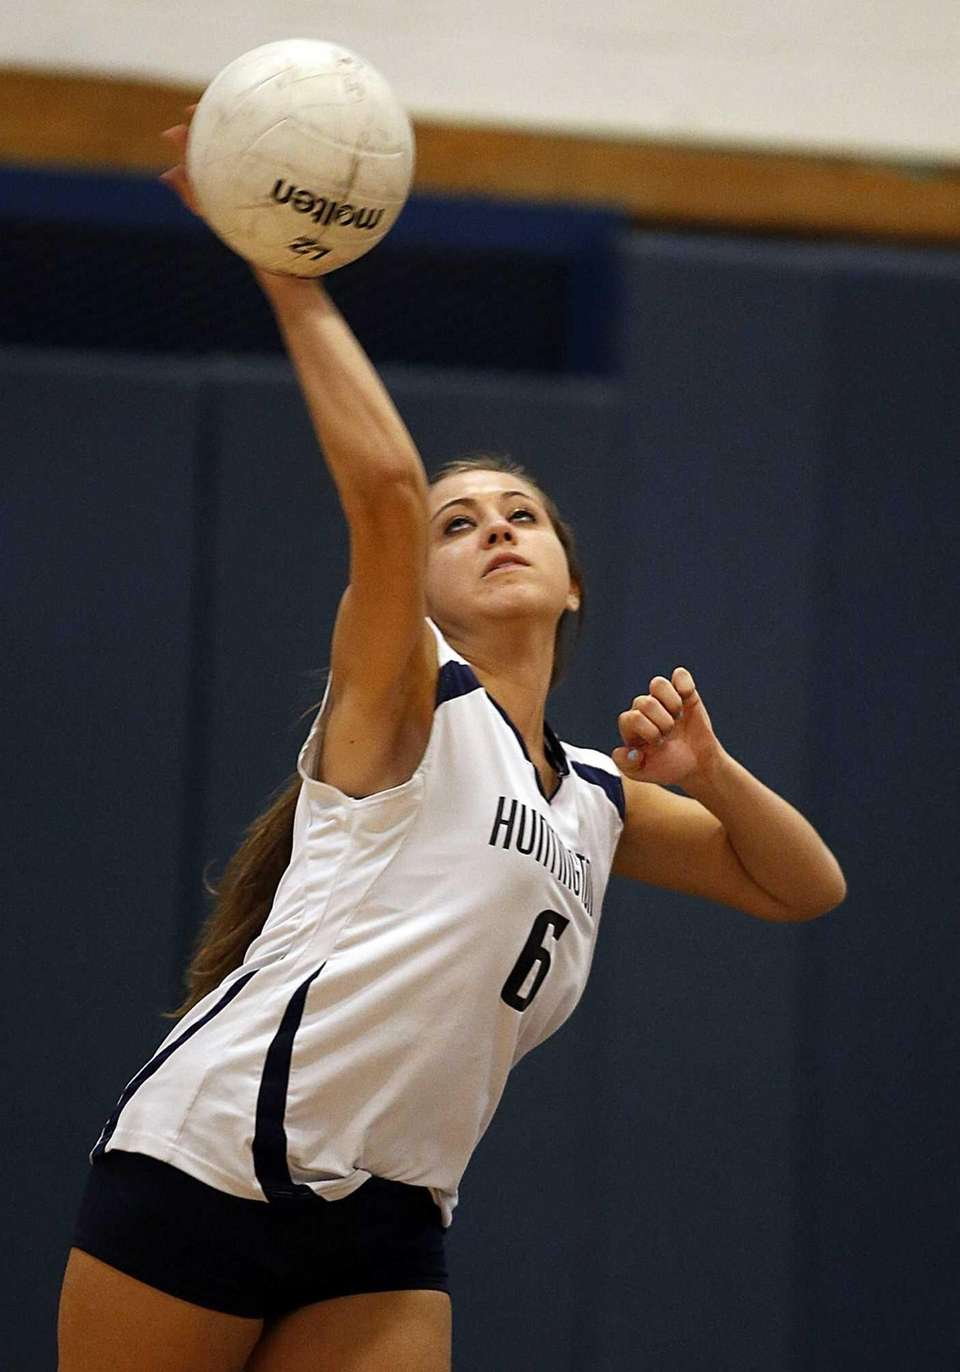 Kings Park's Jaclyn Wilton serves the ball in